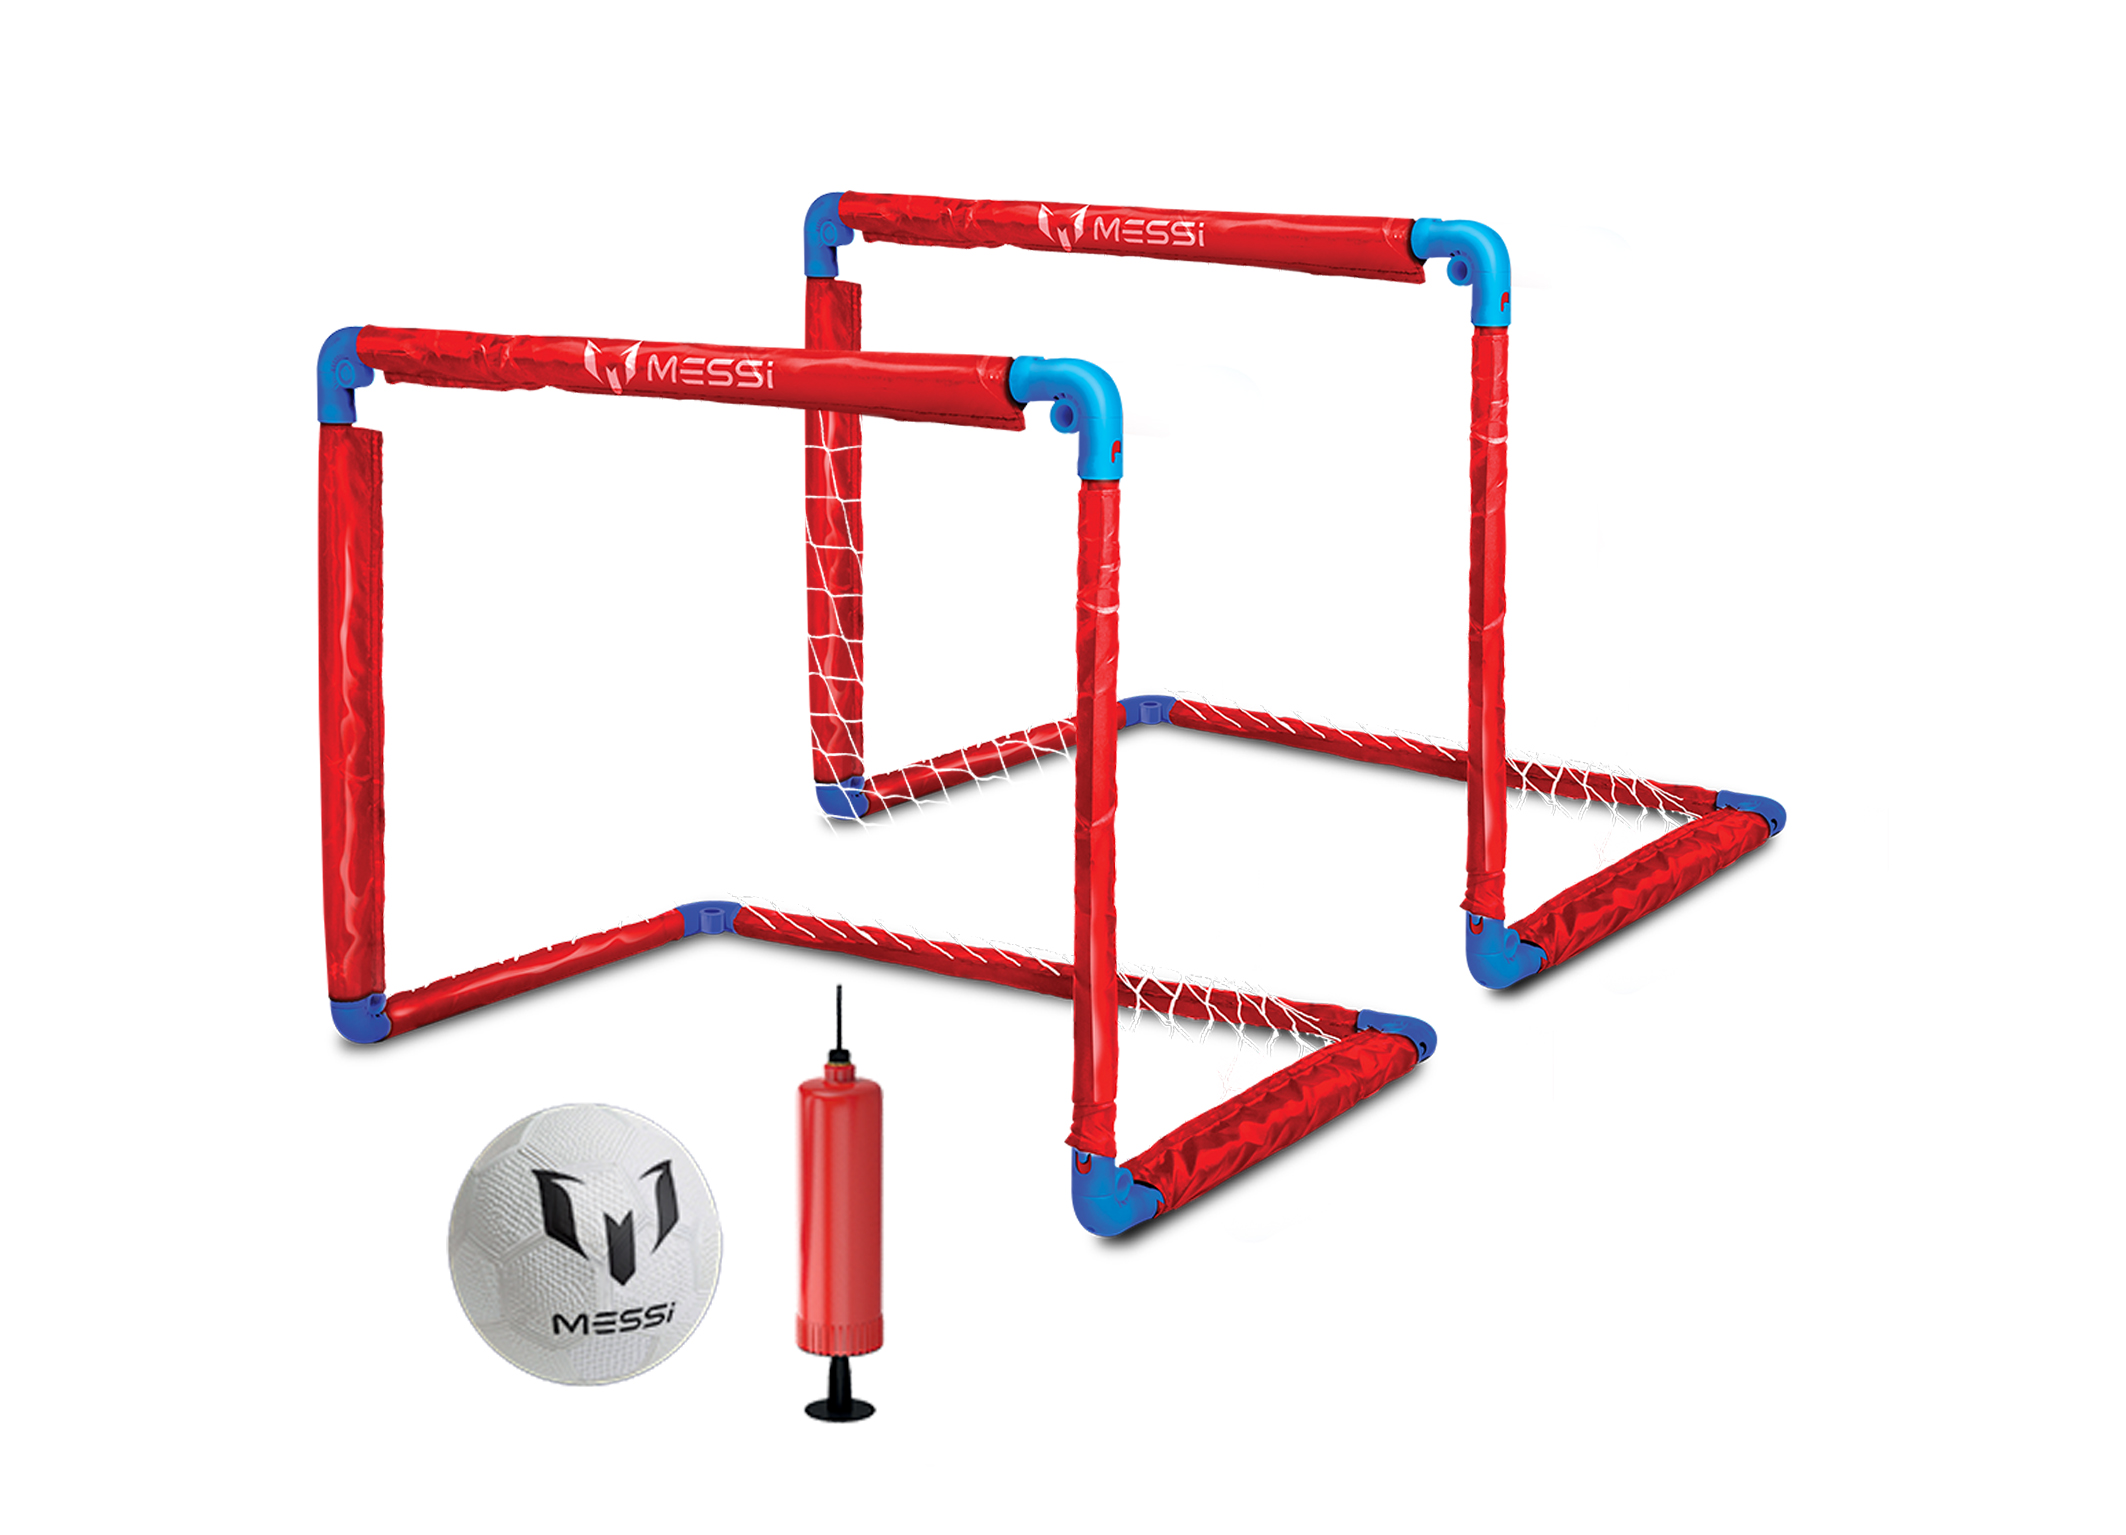 83352c58c FOLDABLE GOAL SMALL DUO - Messi Training System